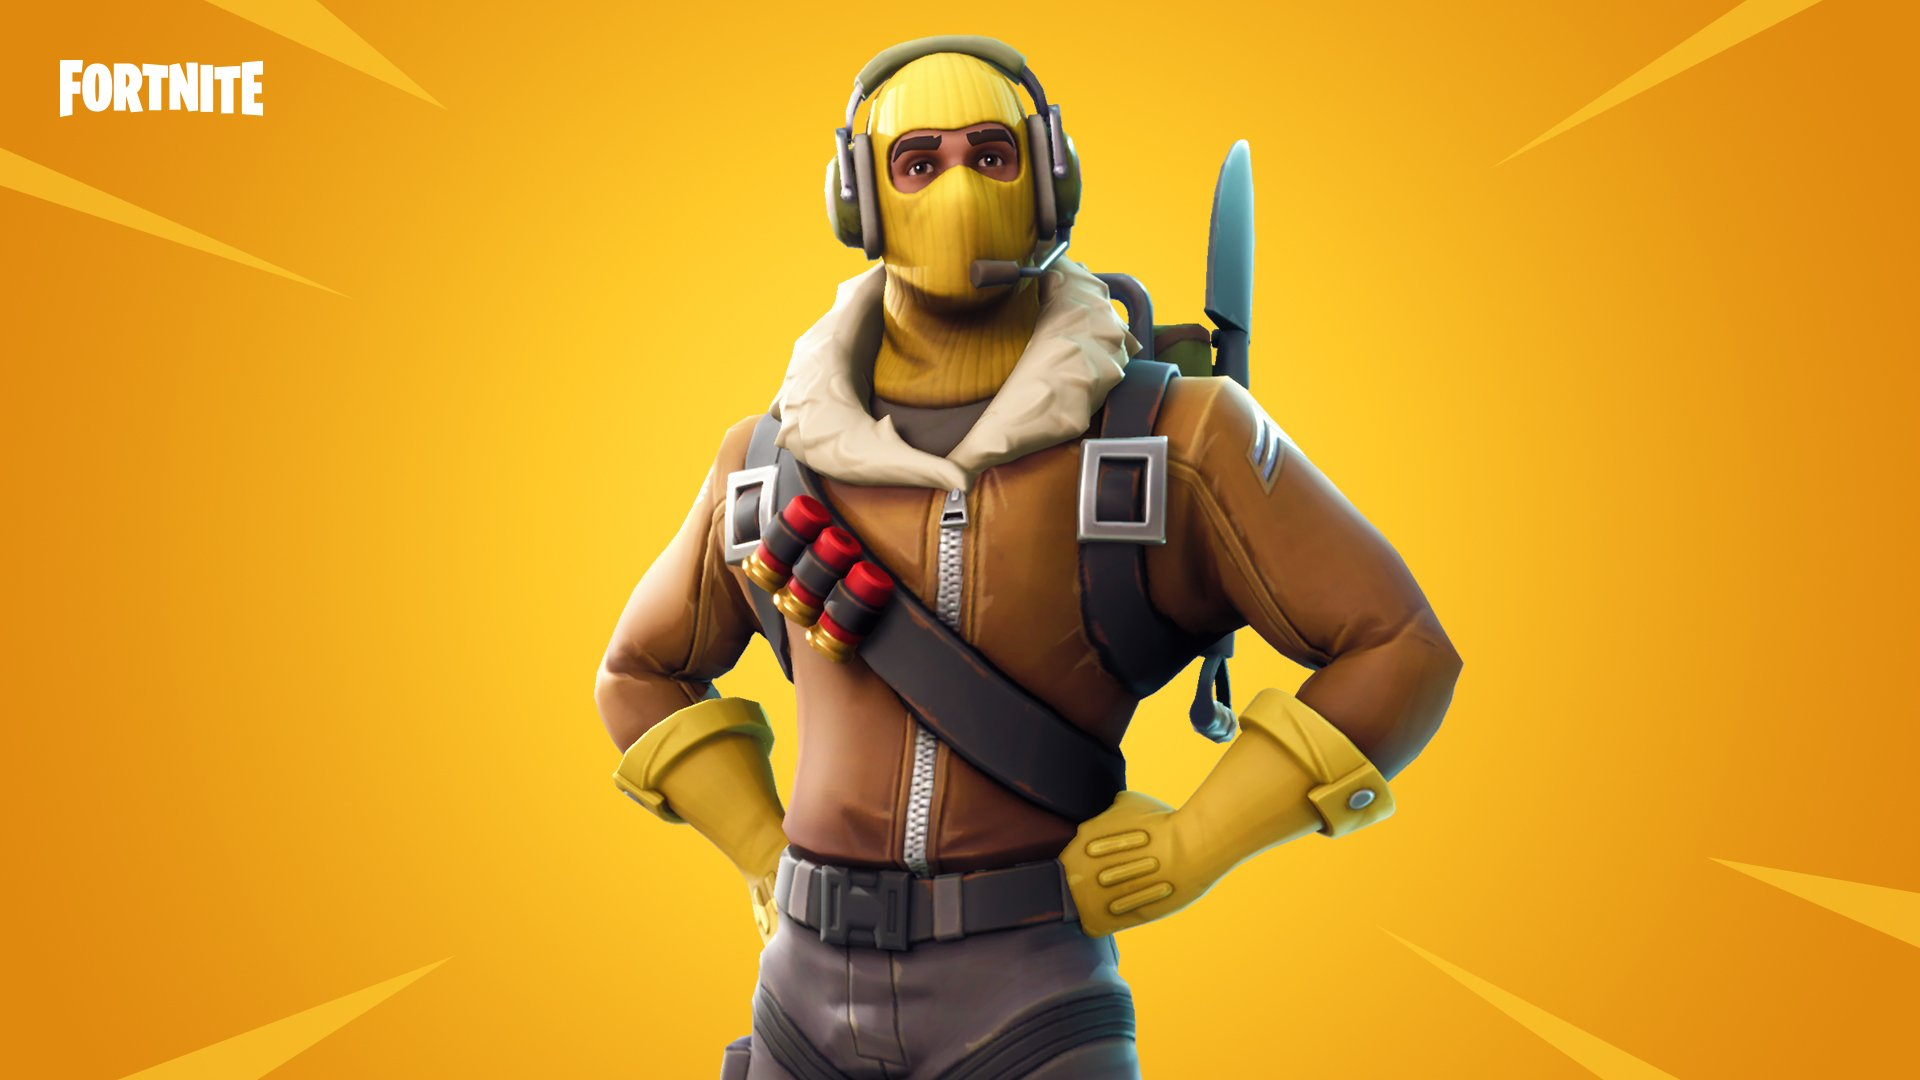 Fortnite Raptor Skin Legendary Outfit Fortnite Skins